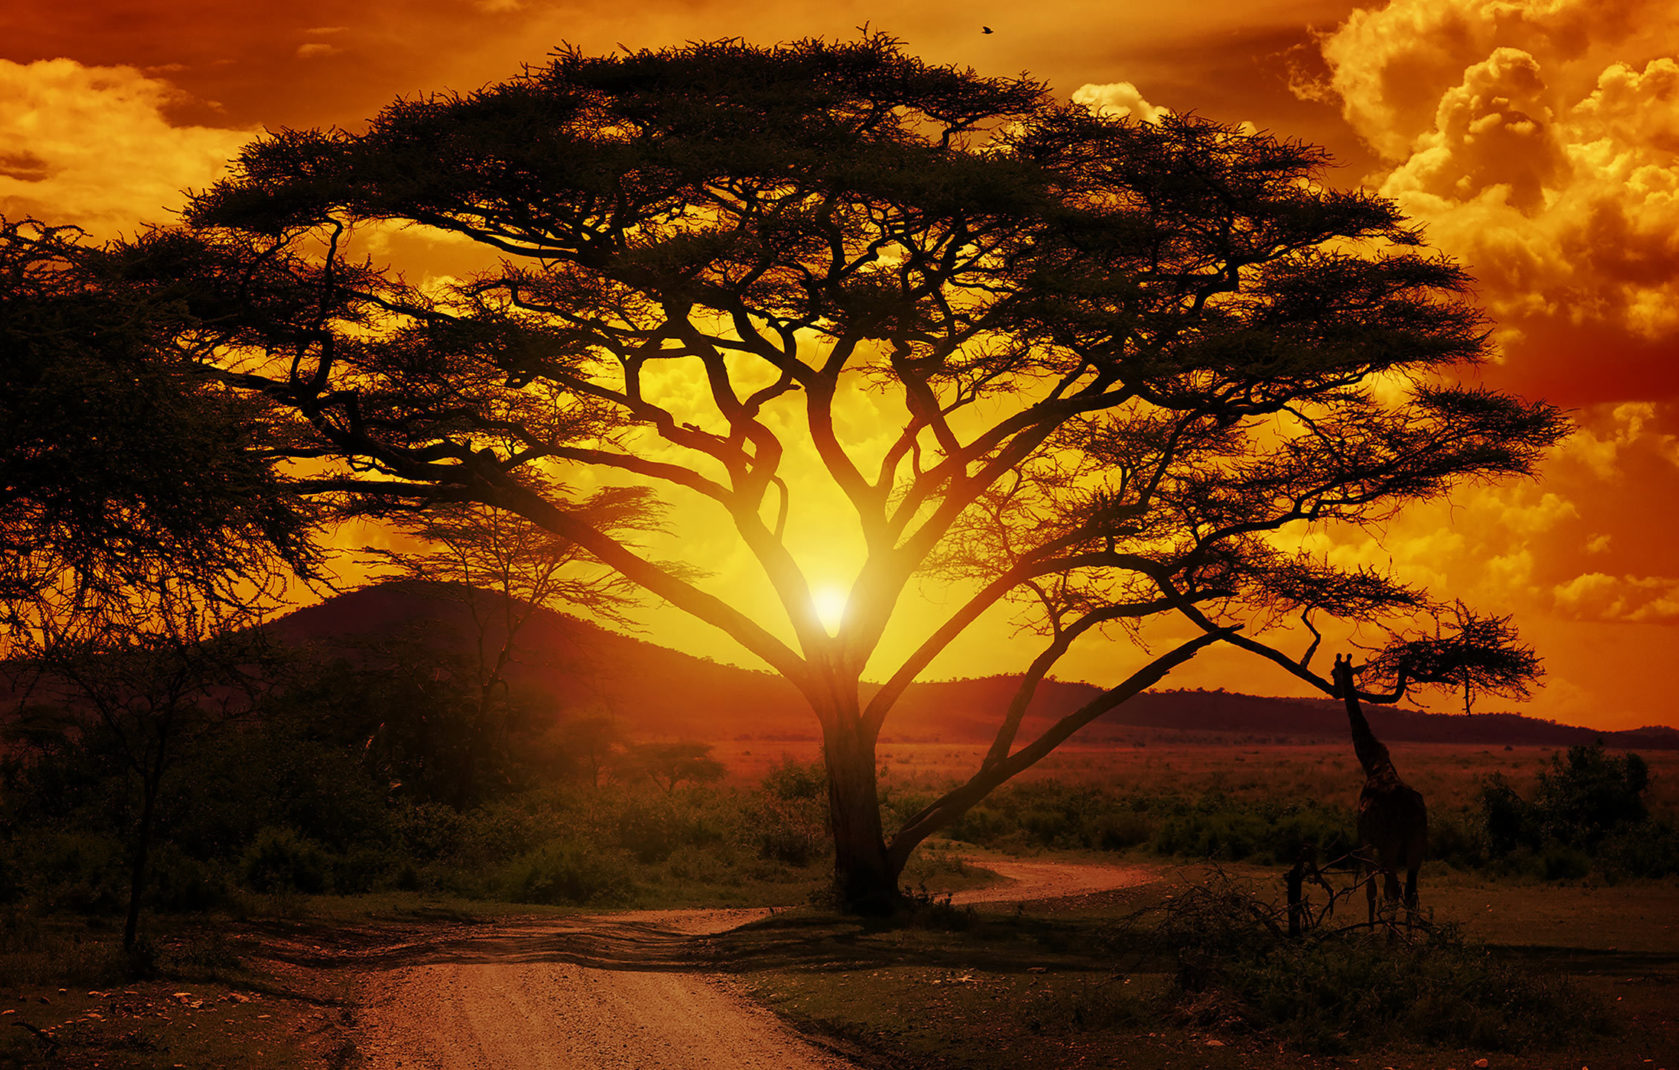 Destination Tanzania 01 Header